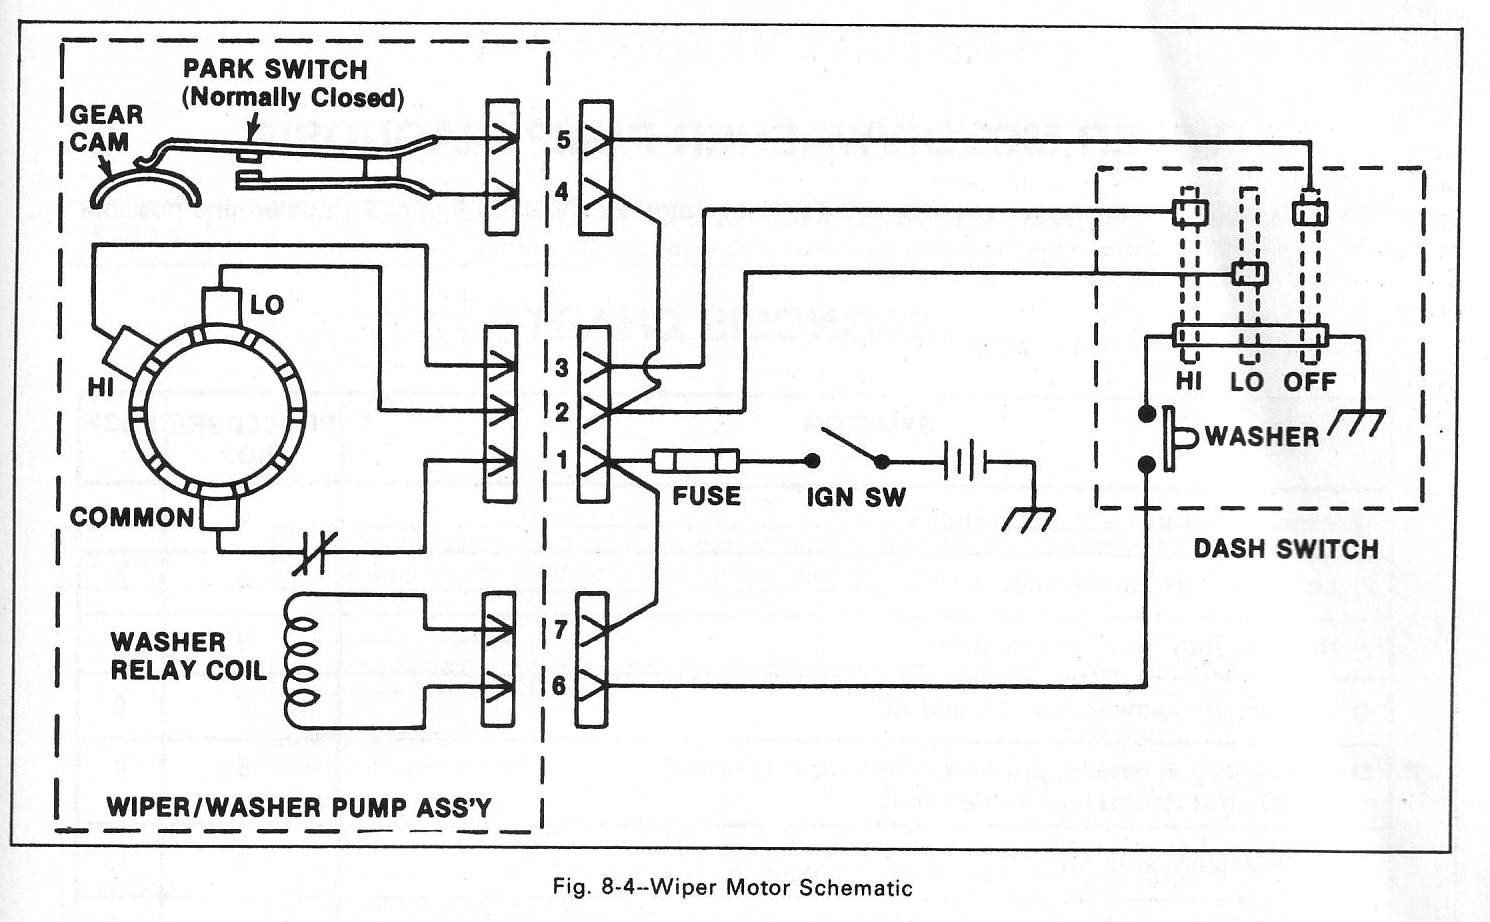 Wiring Diagram For Fiat Uno - Wiring Schematics on